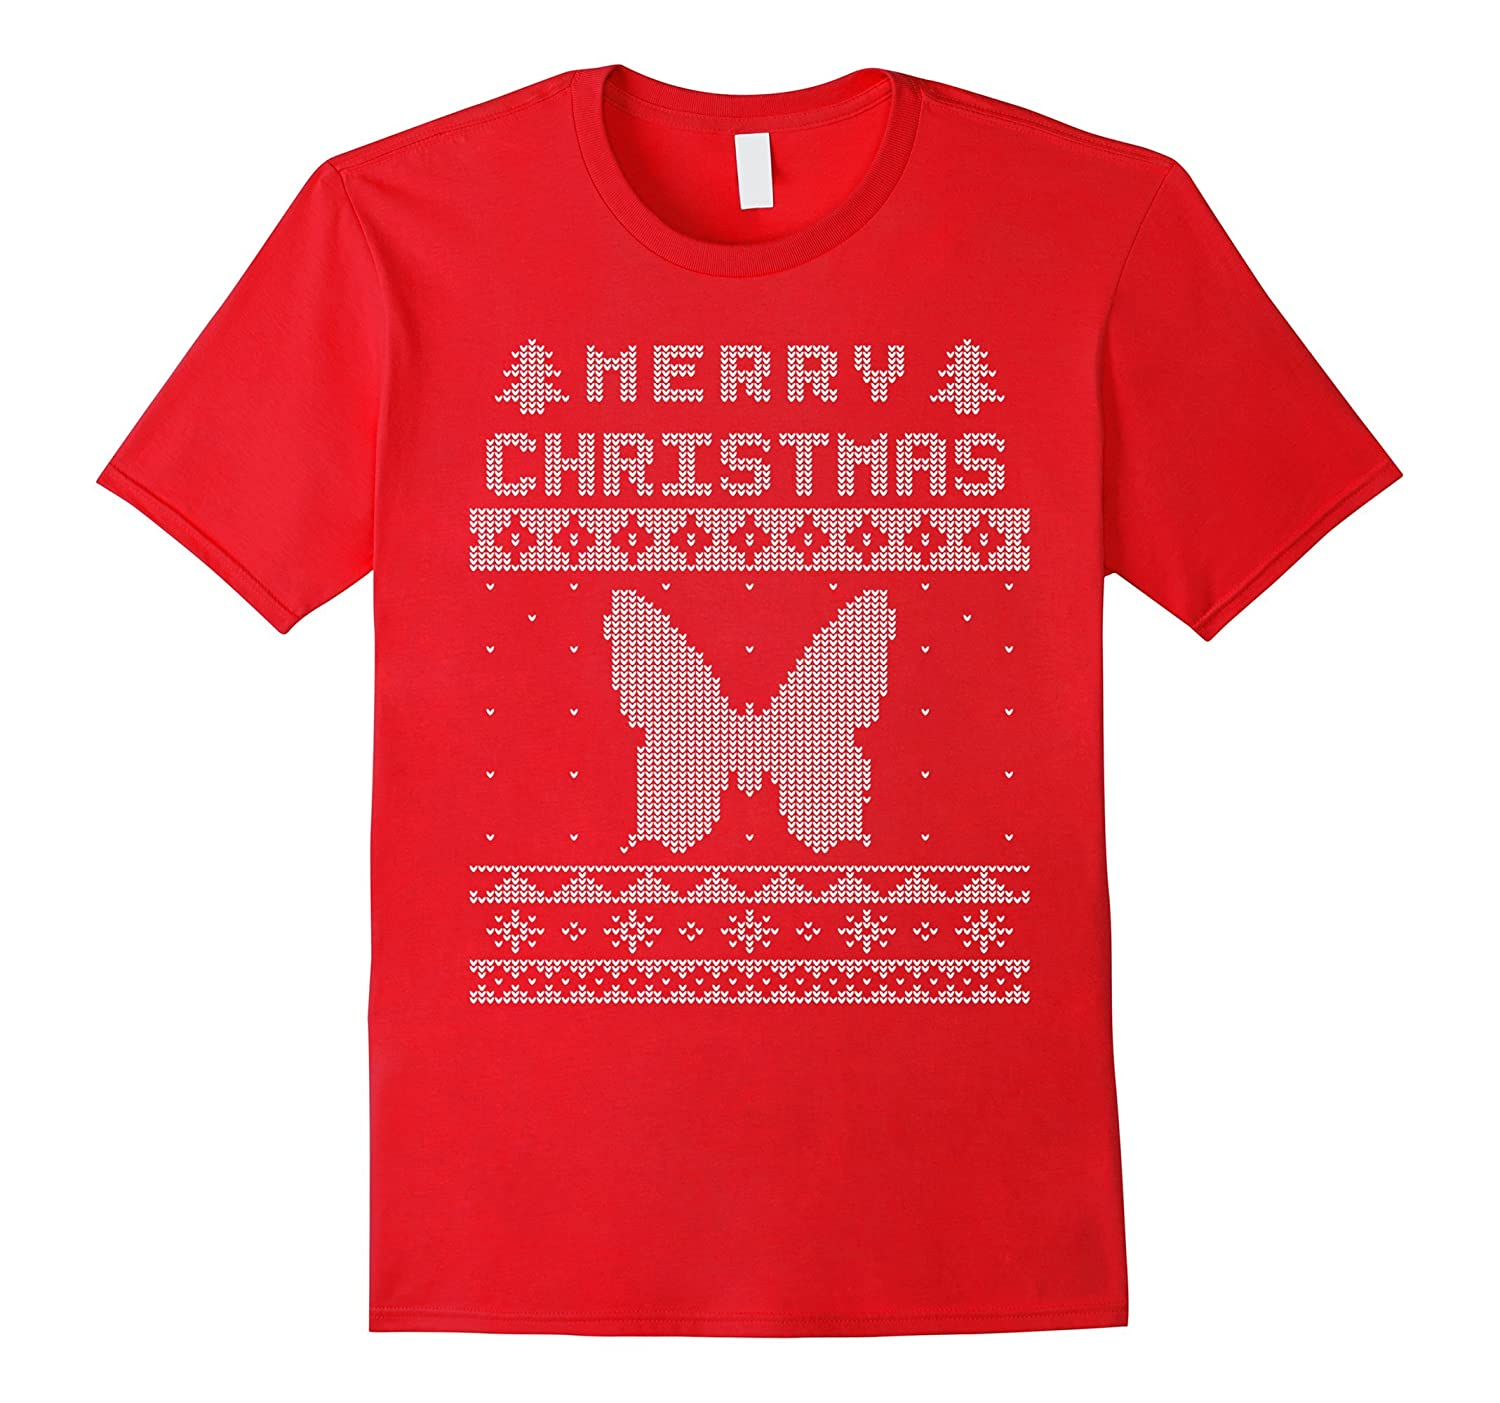 BUTTERFLY Ugly Xmas Sweater - Shirt For XMas Parties-FL